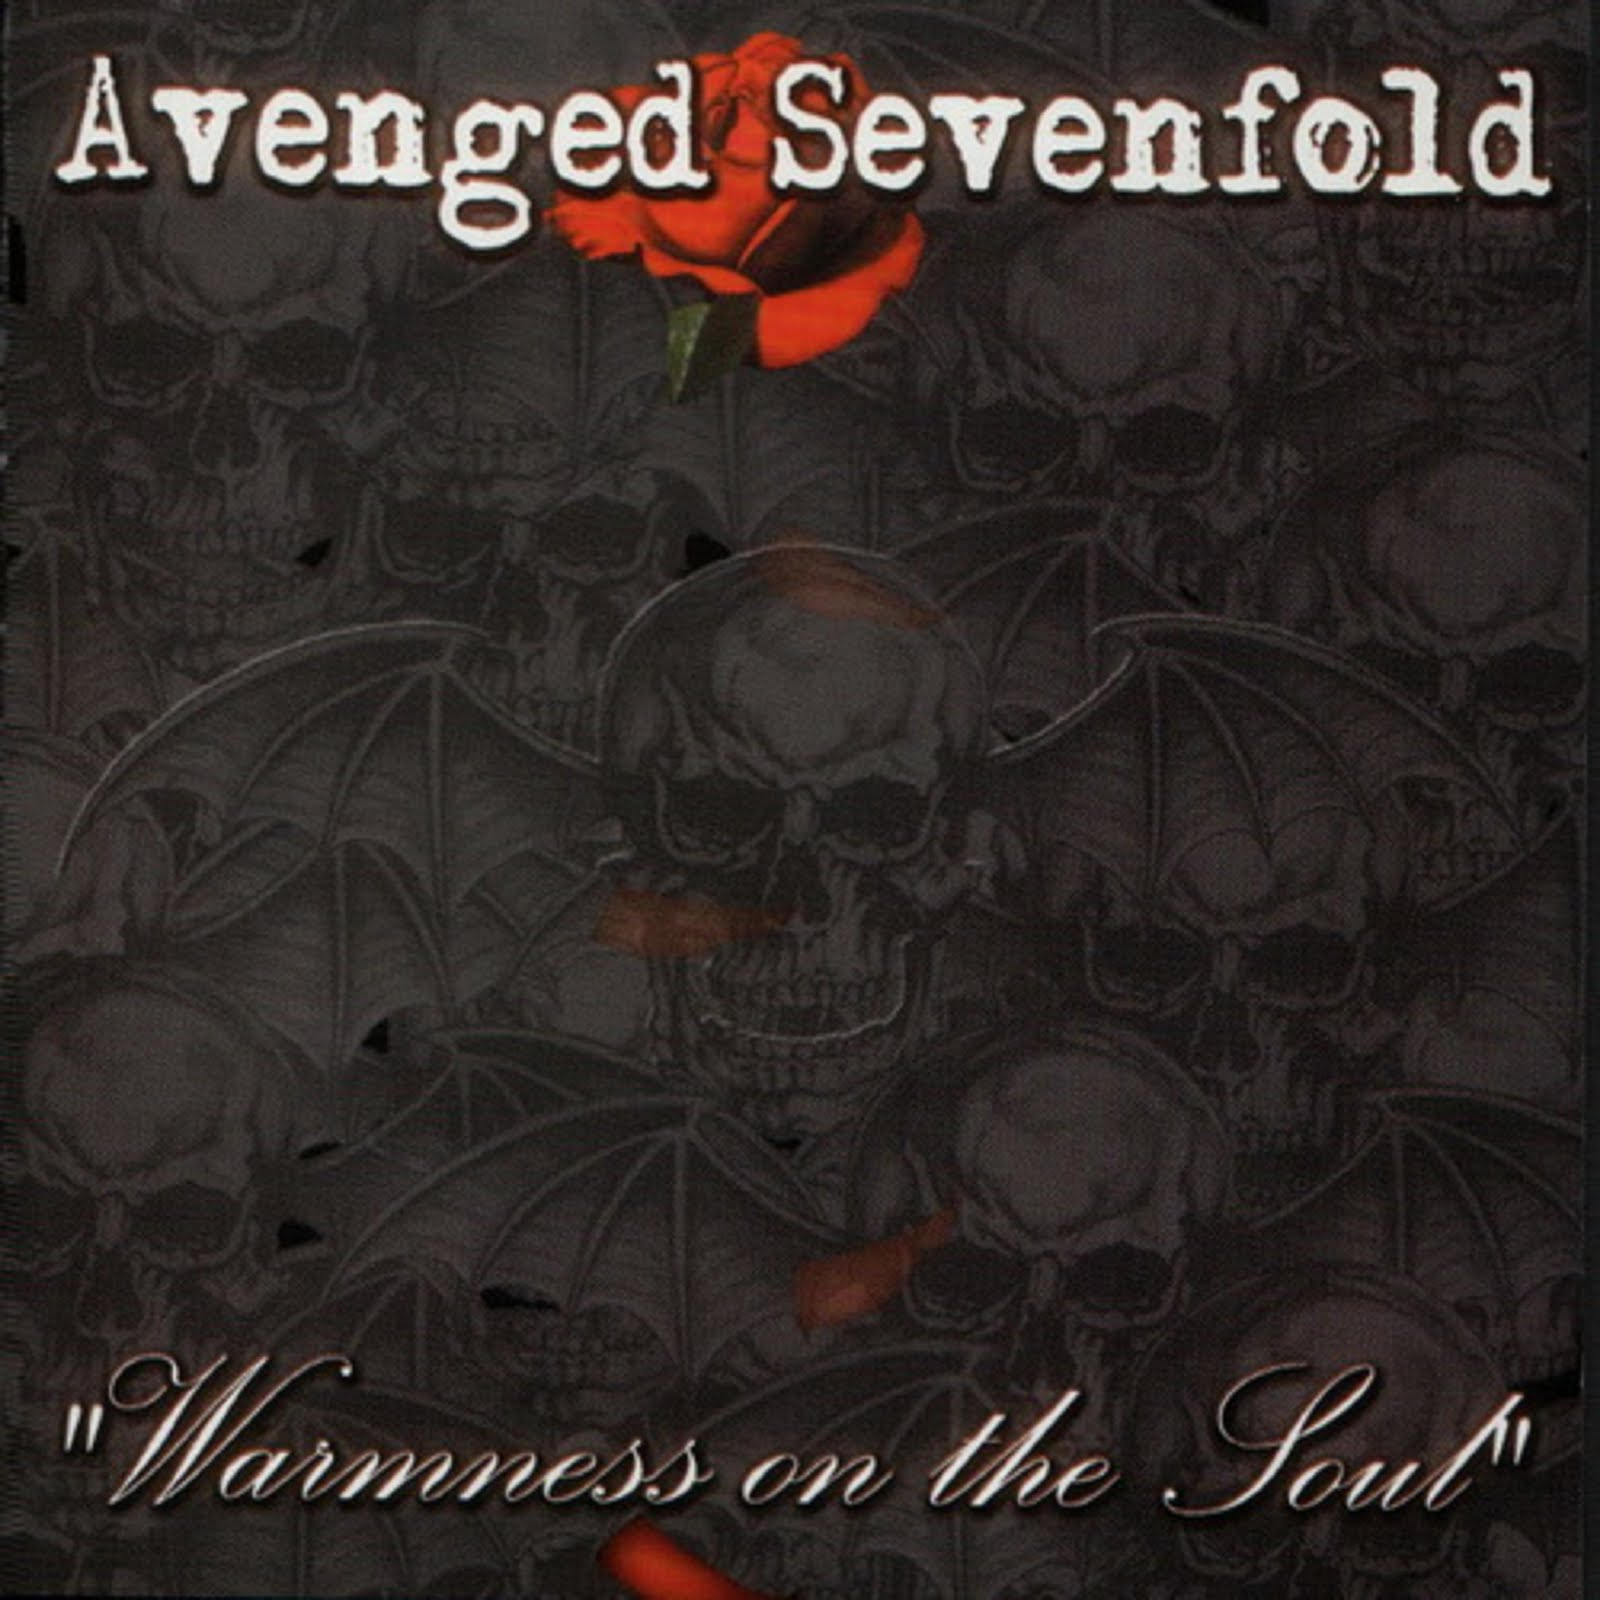 a7x warmness on the soul